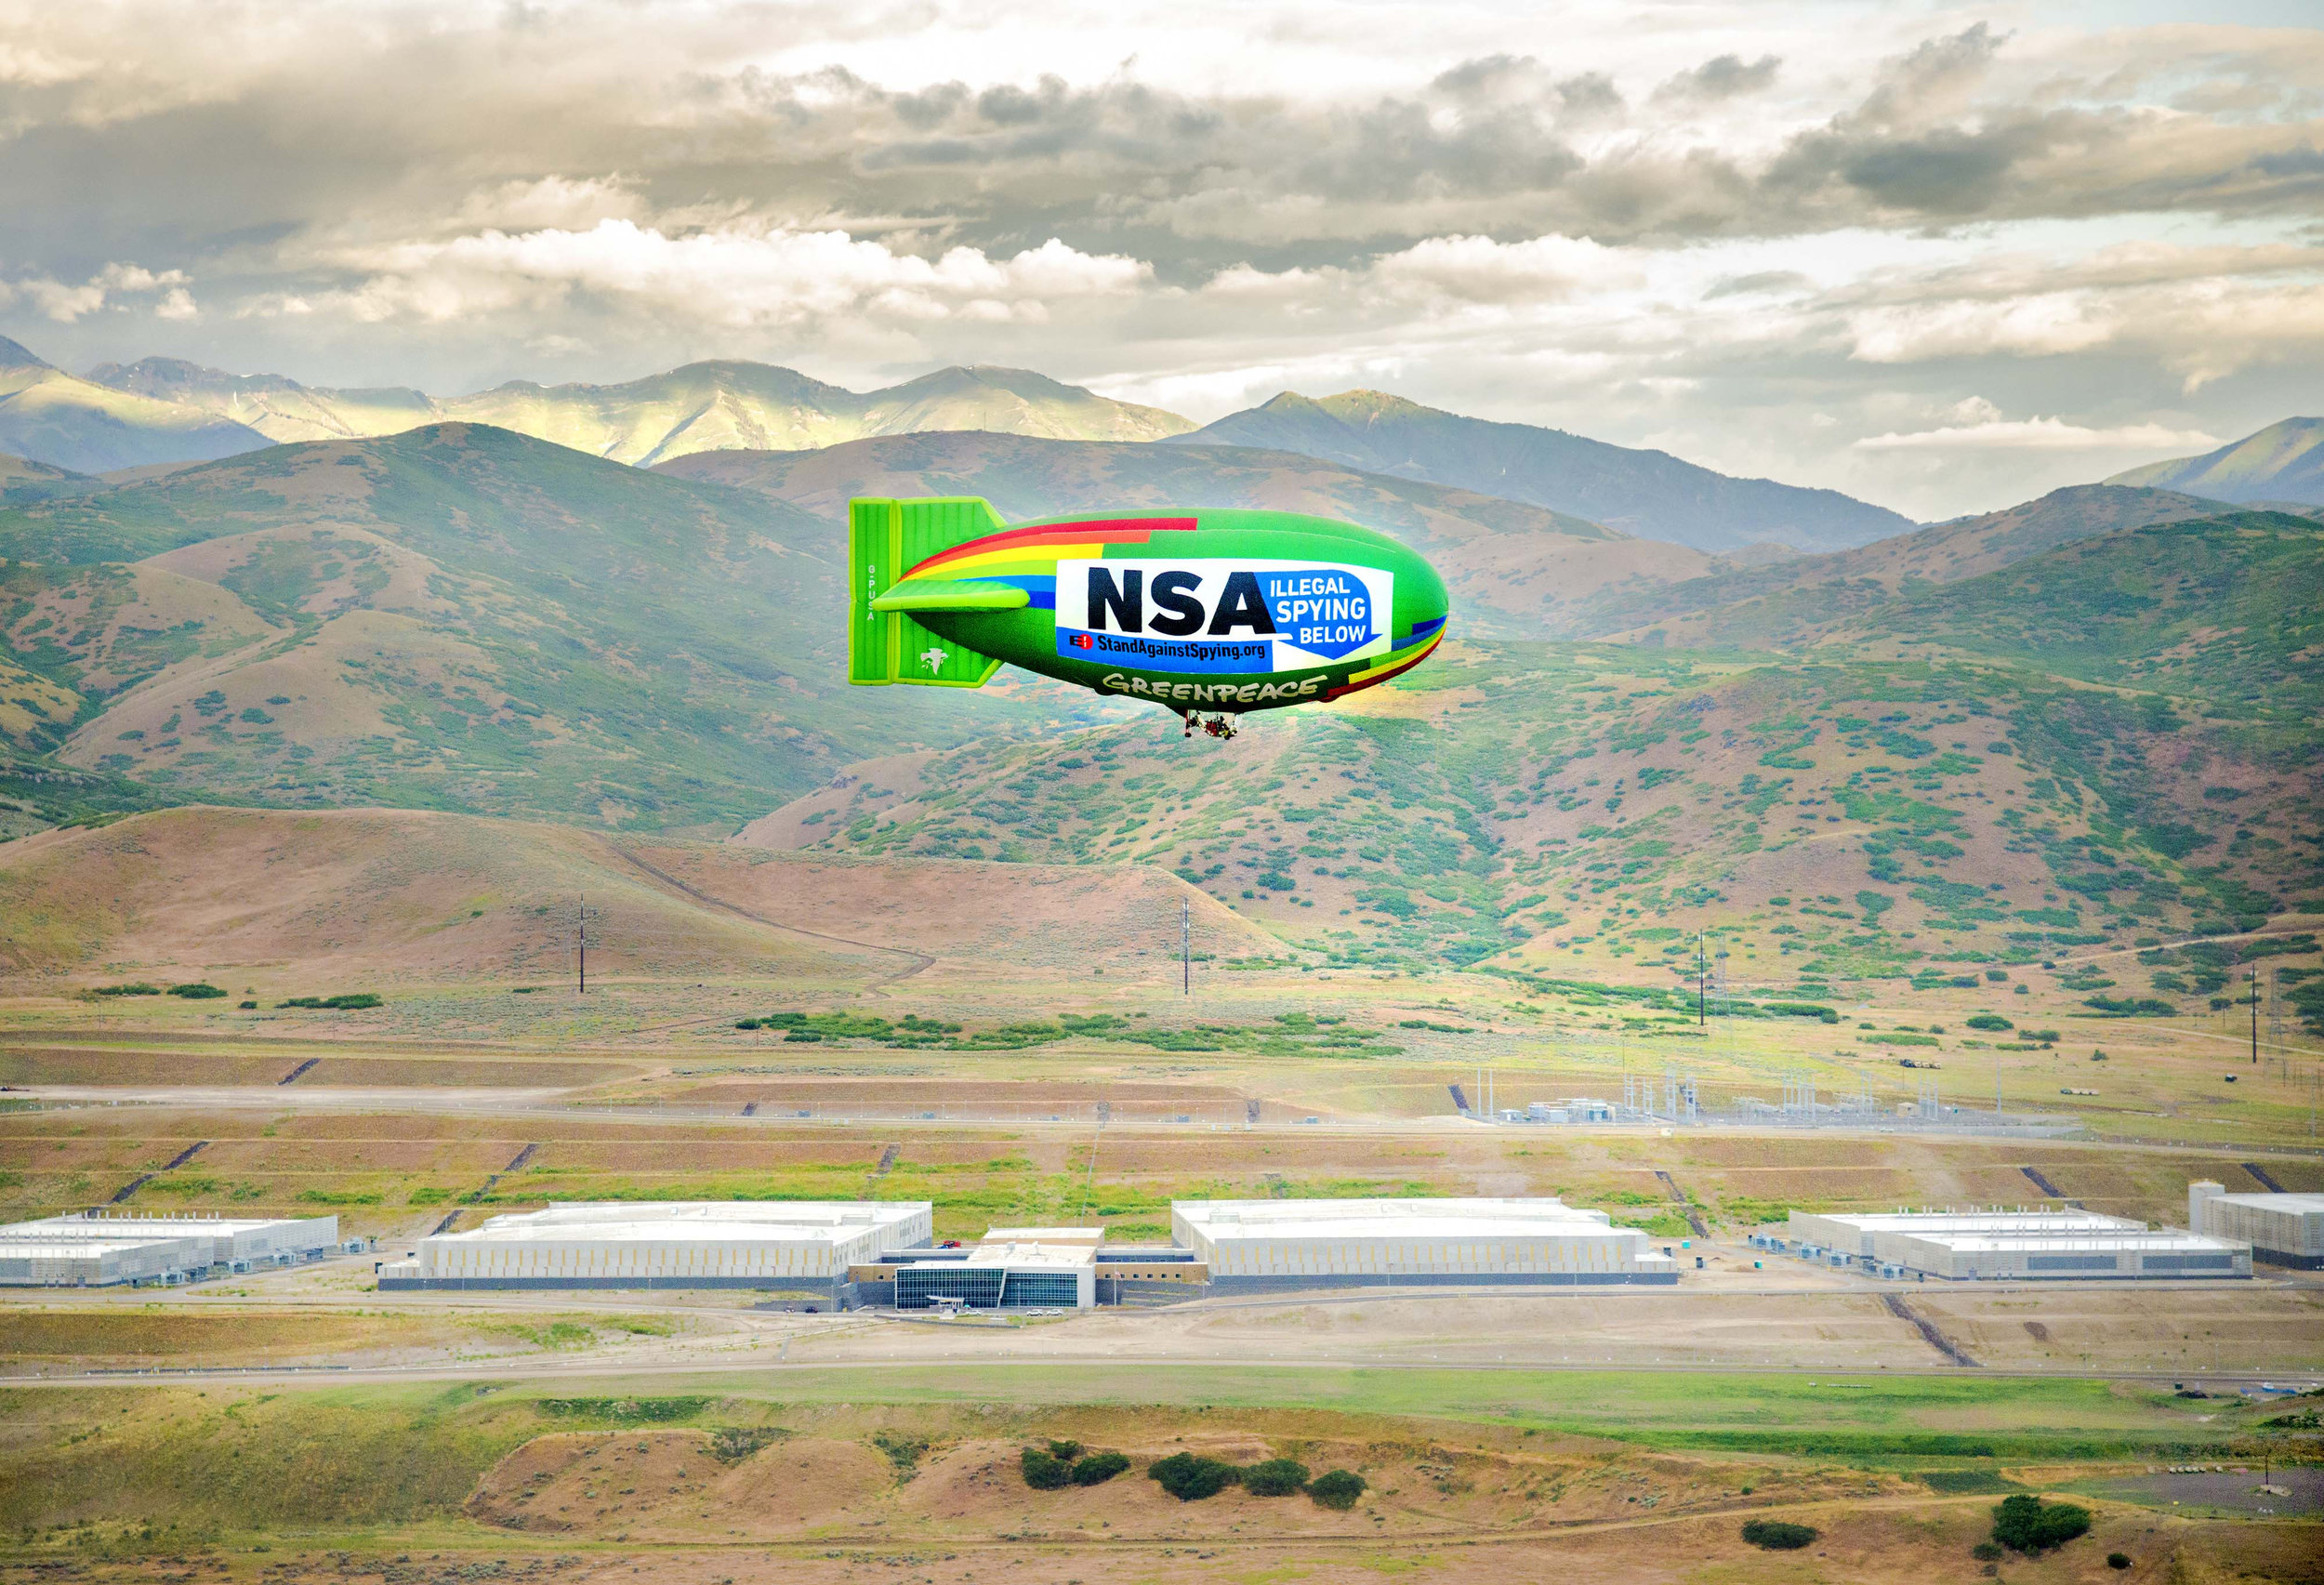 The blimp was launched by the EFF in conjunction with eco-activist organization Greenpeace and the building it was flying over was the NSA Data Center in Utah.